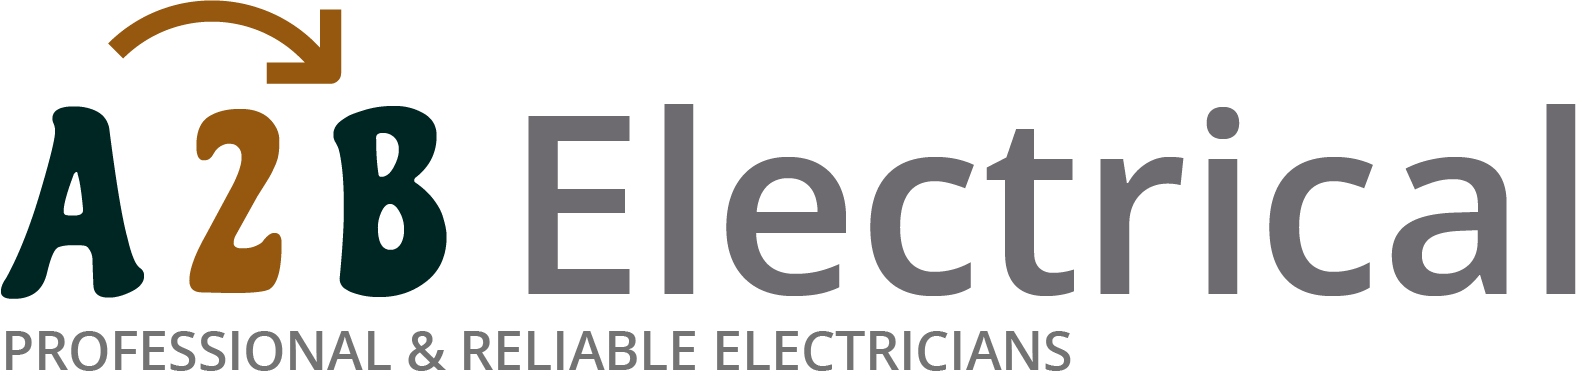 If you have electrical wiring problems in Clacton On Sea, we can provide an electrician to have a look for you.